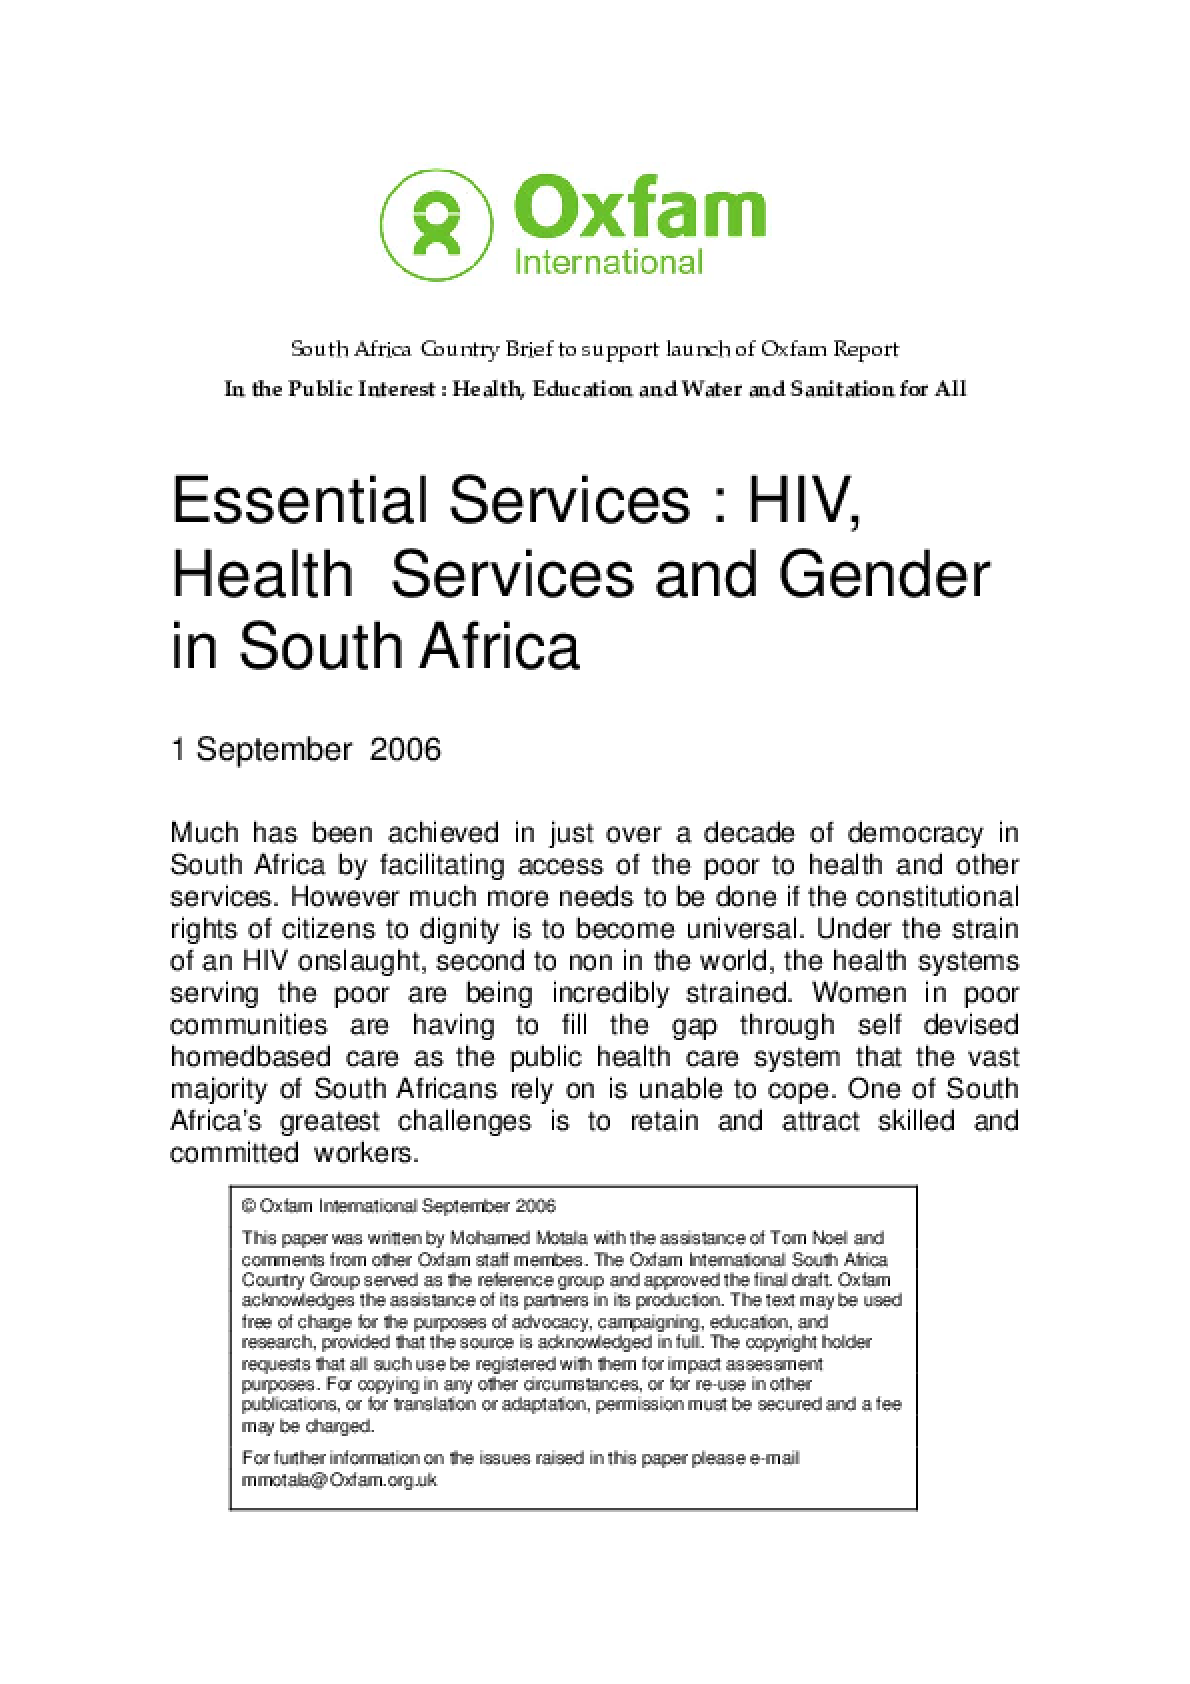 Essential Services: HIV, health services and gender in South Africa